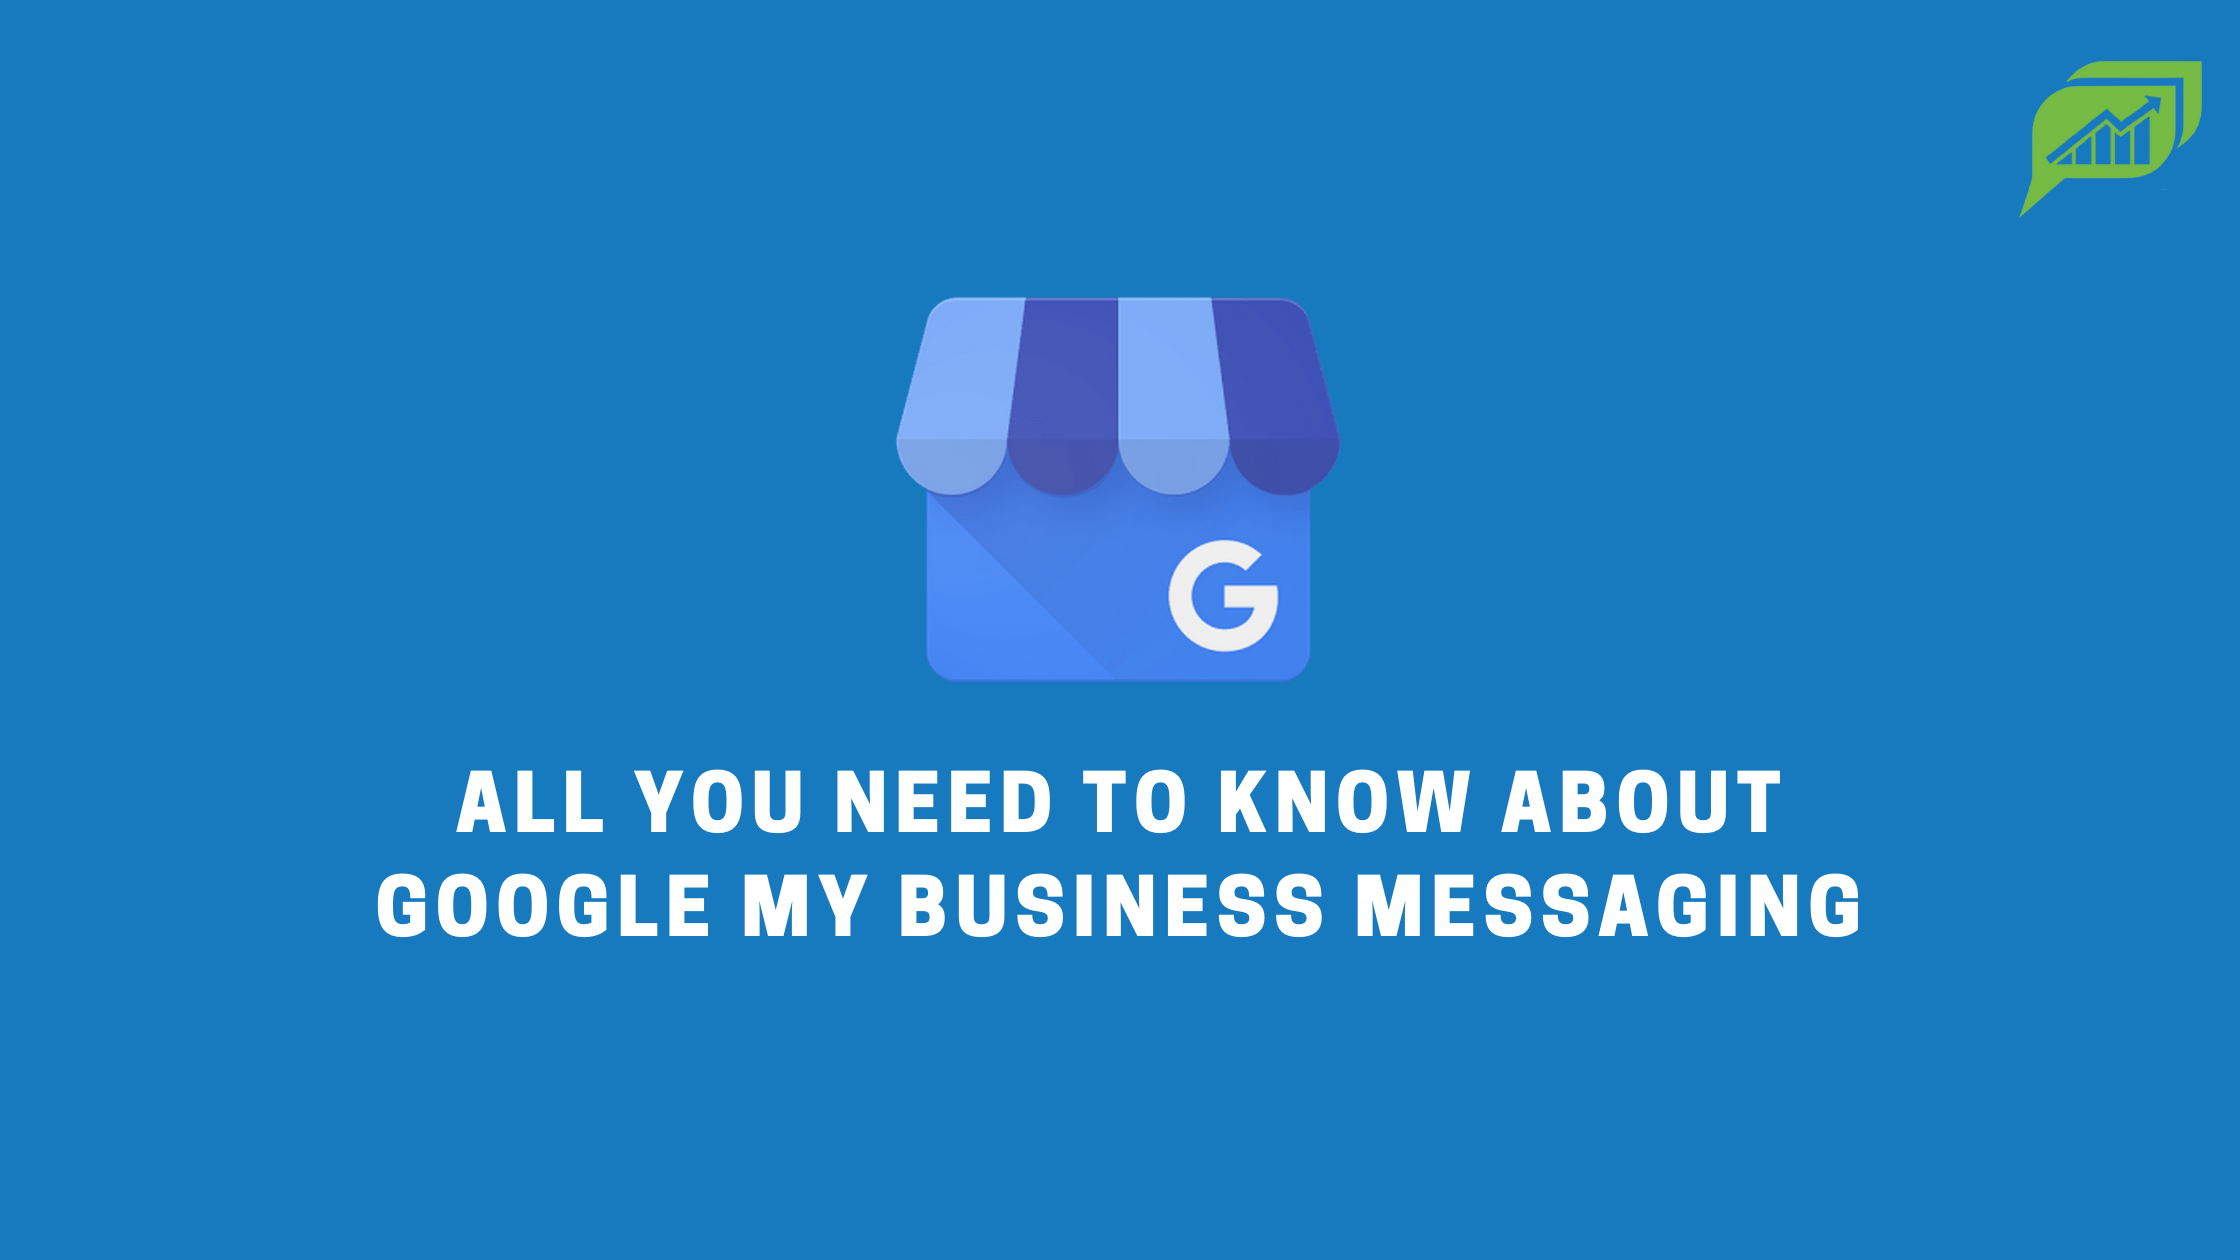 All you need to know about google my business messaging feature